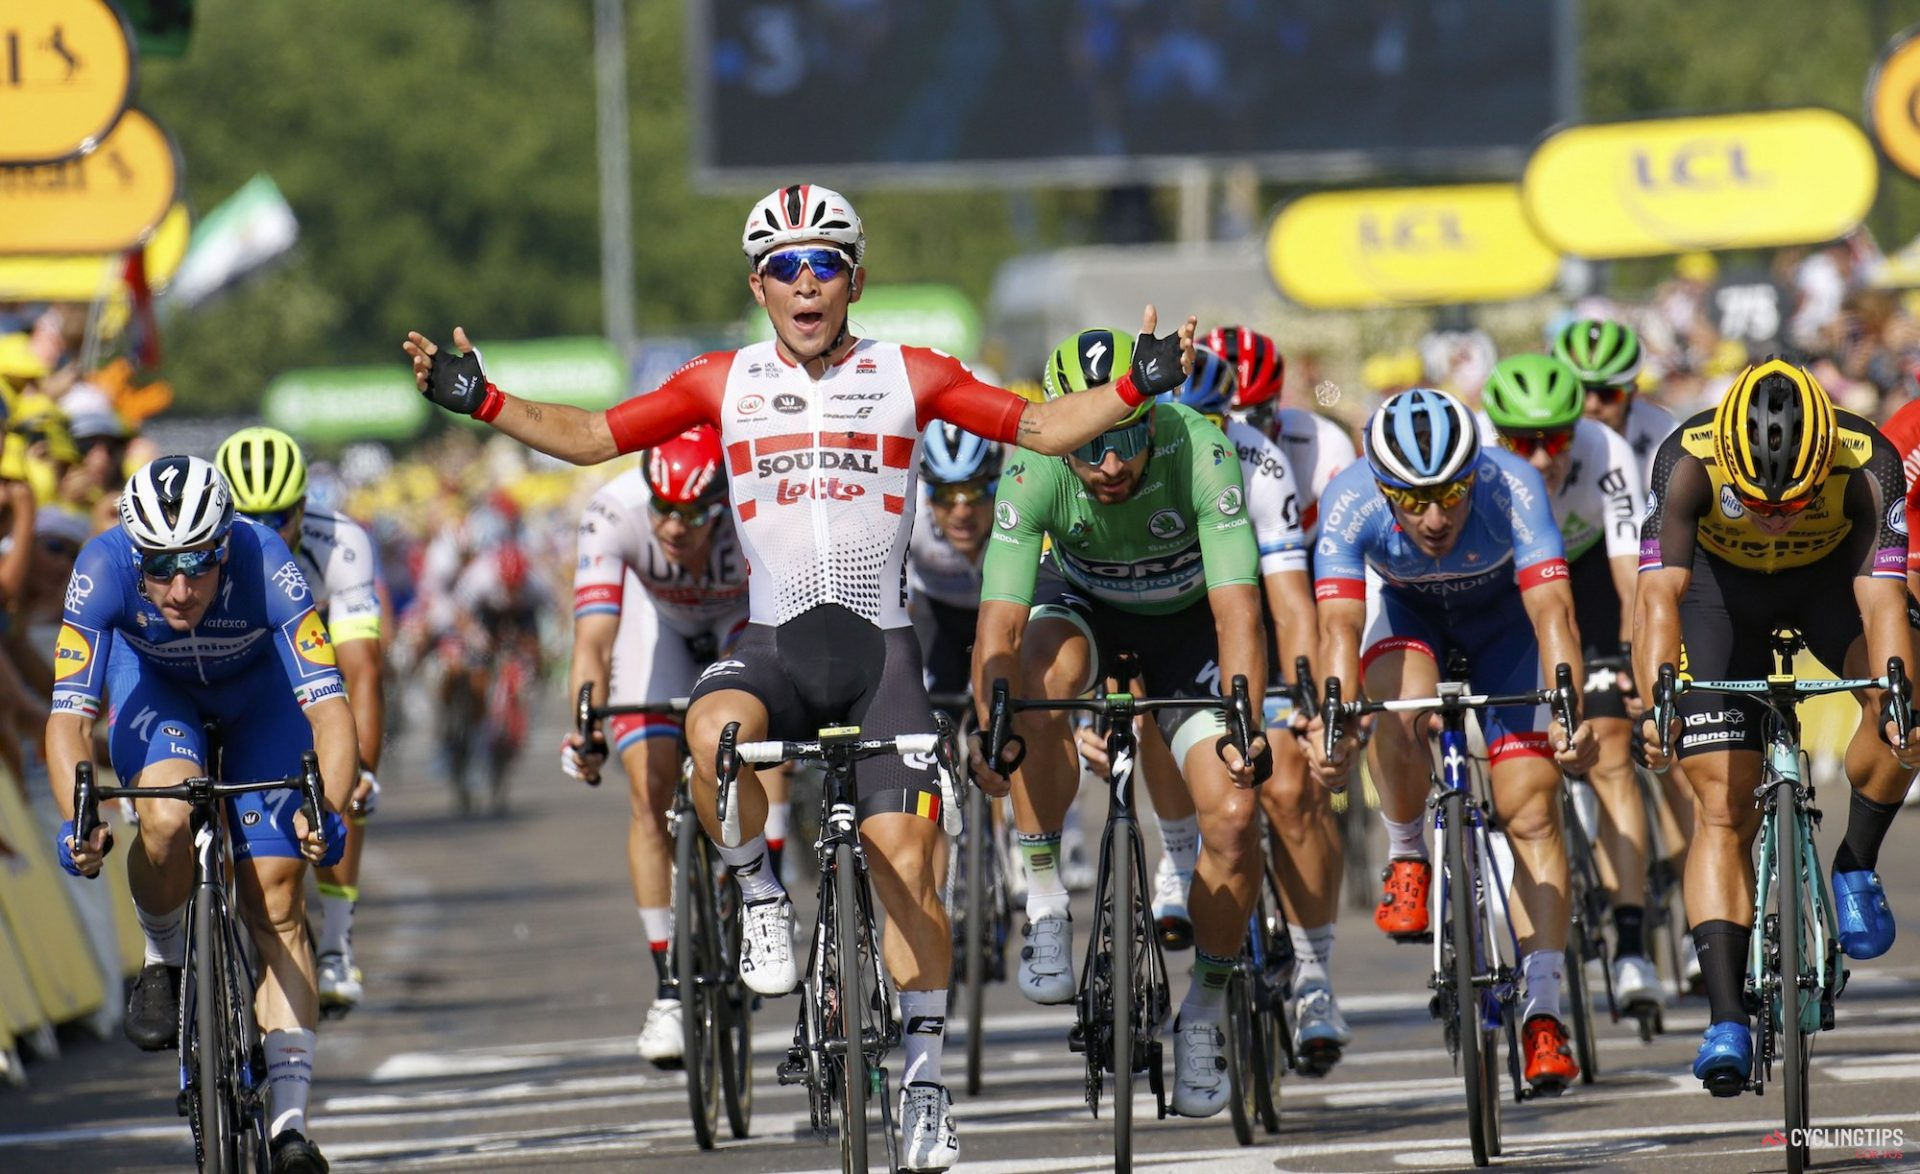 Caleb Ewan Does it Again with Victory at Stage 16 of 2019 Tour de France 3